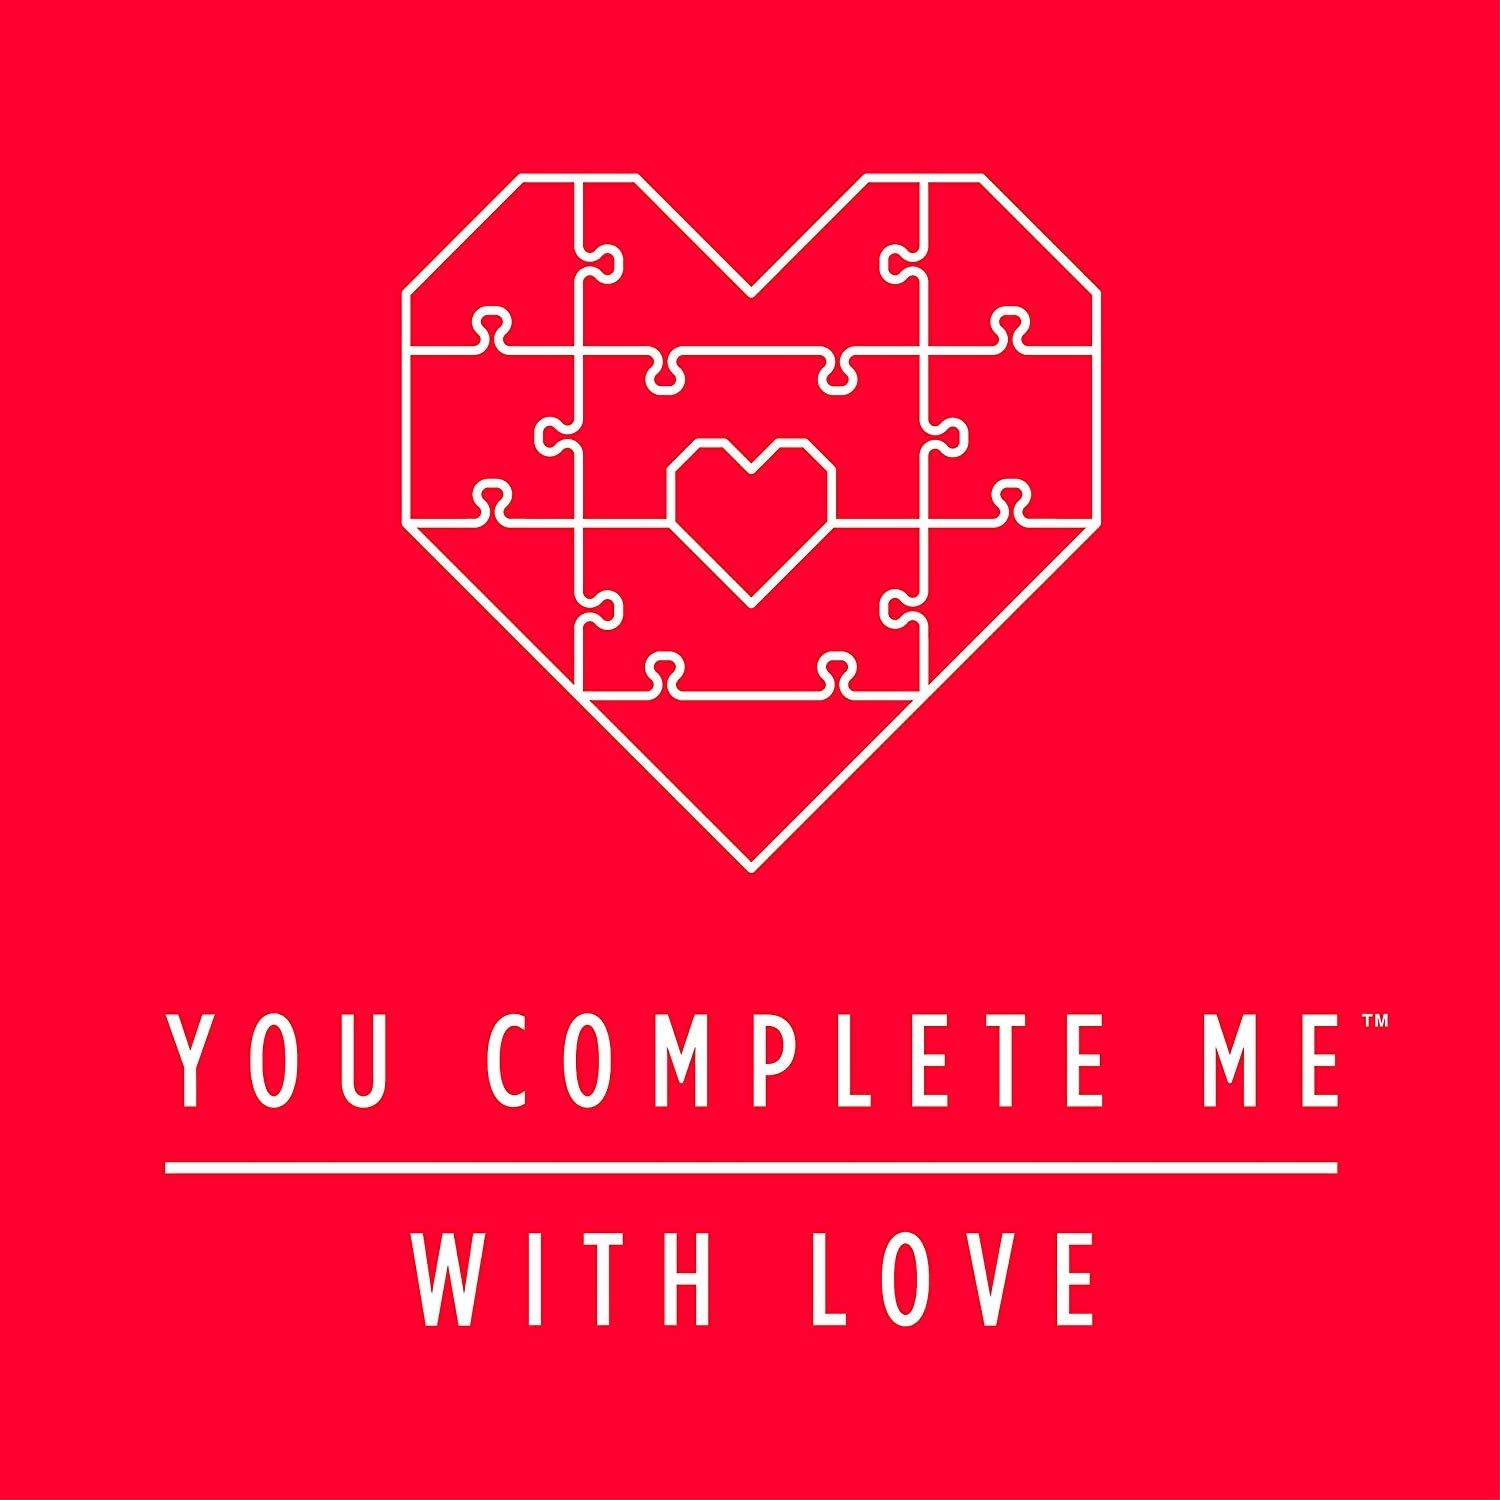 10 Piece Set You Complete Me Heart Shaped Jigsaw Puzzle Unique Love Card With Personalized Romantic Message Red